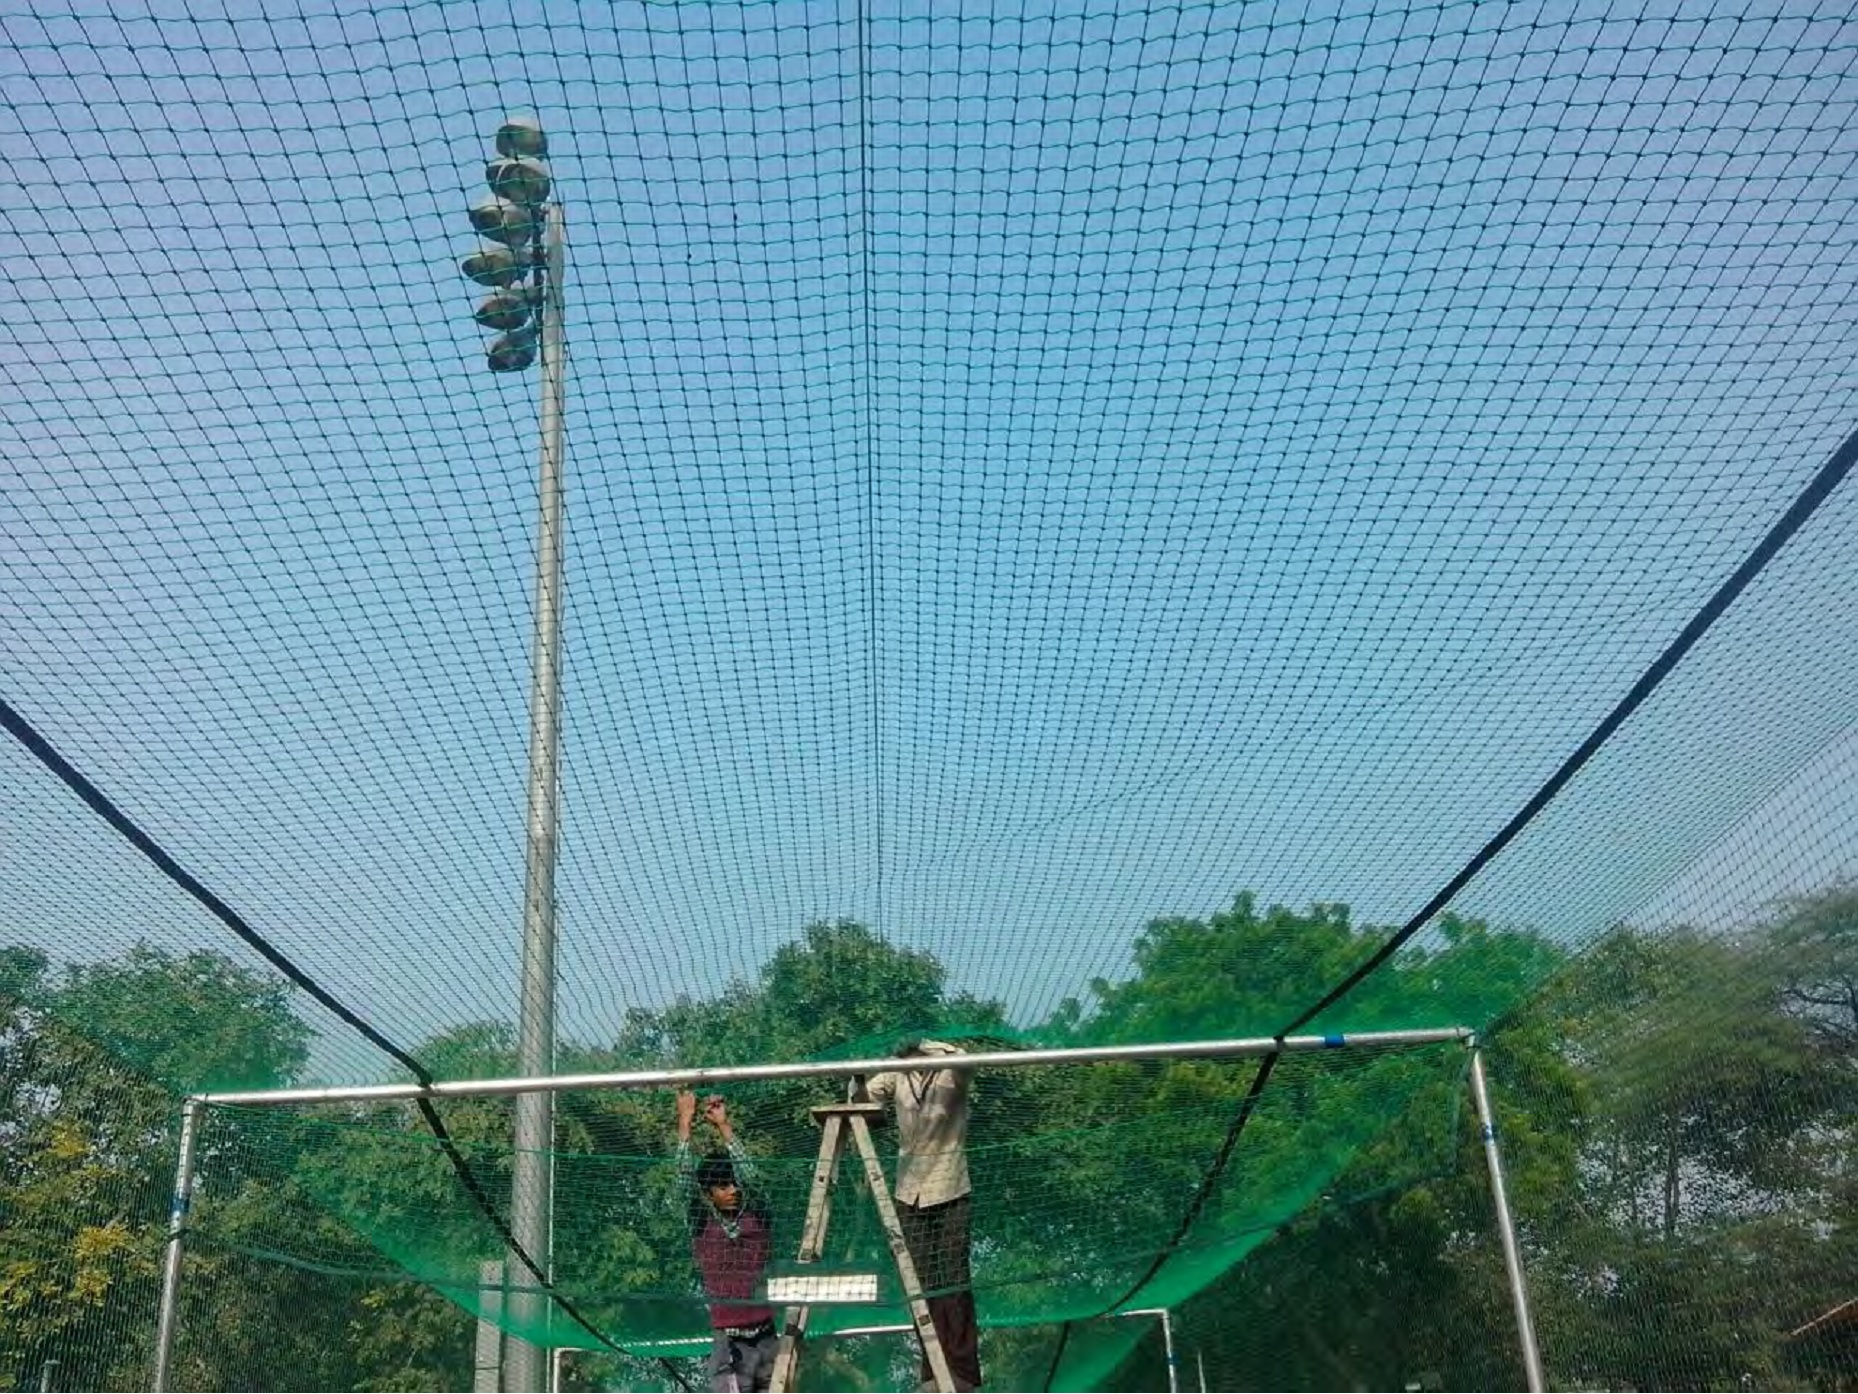 Cricket Net 3 bajajsports